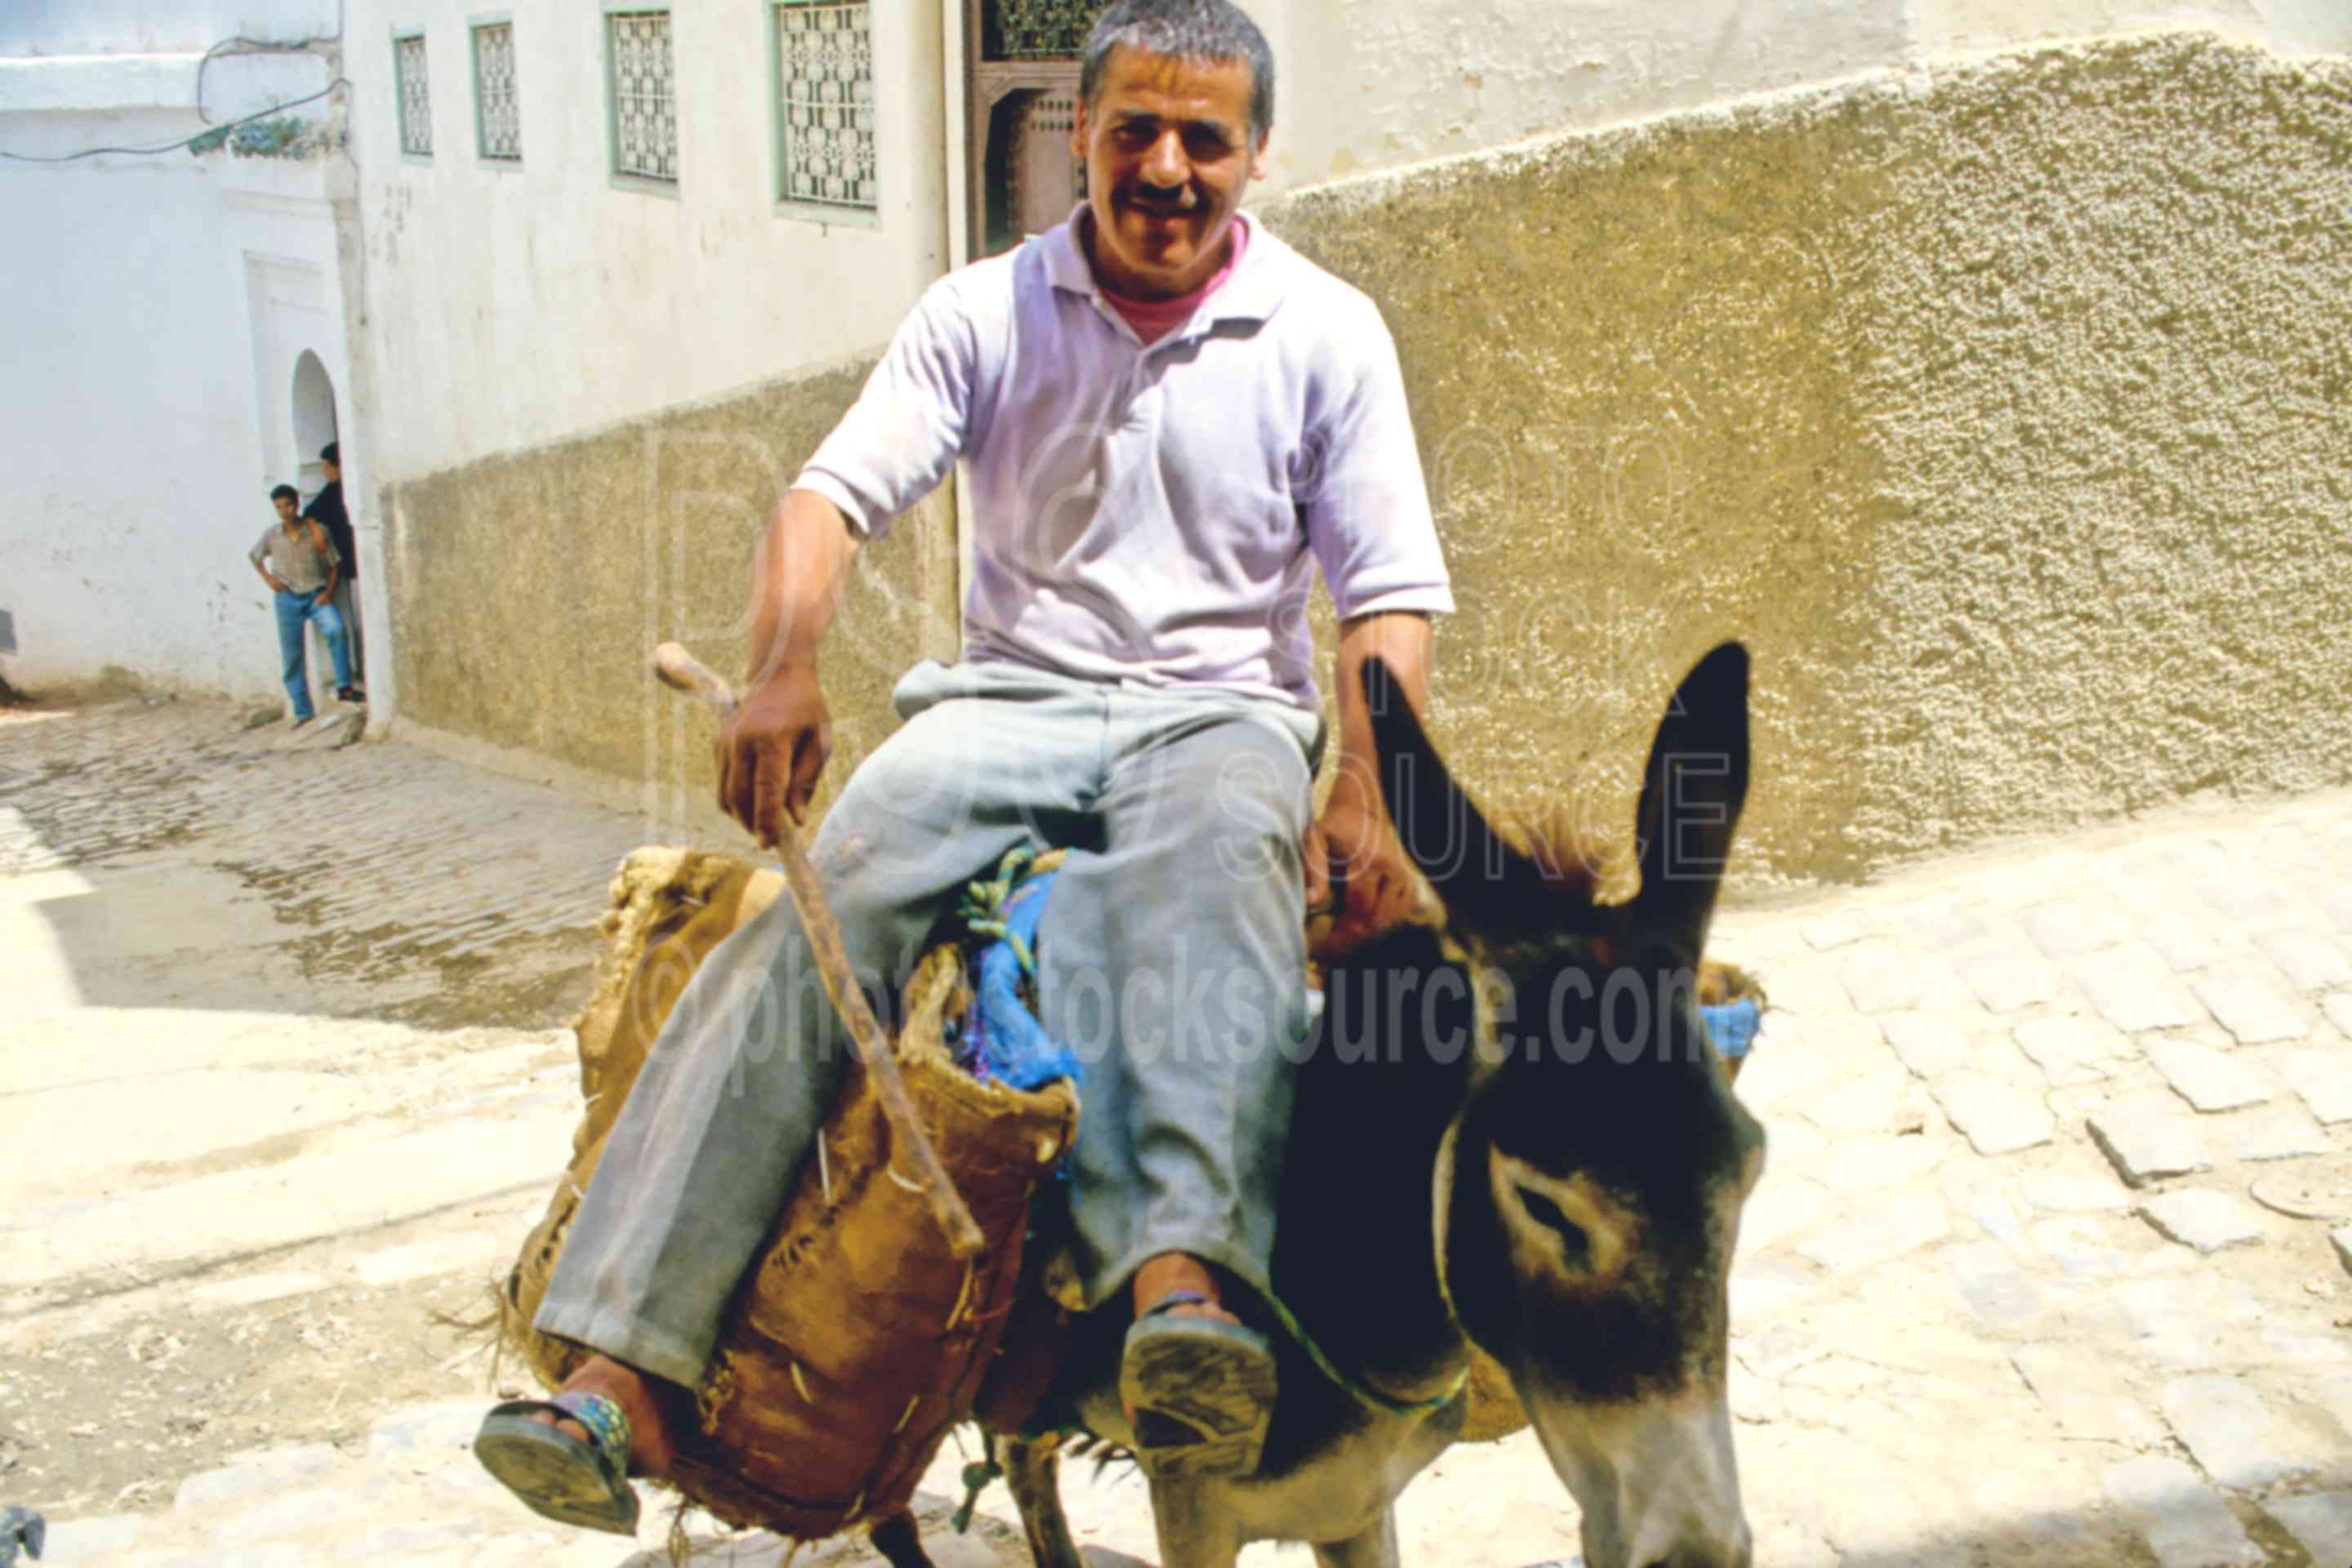 Riding up the Hill,alley,donkey,mans,riding,street,animals